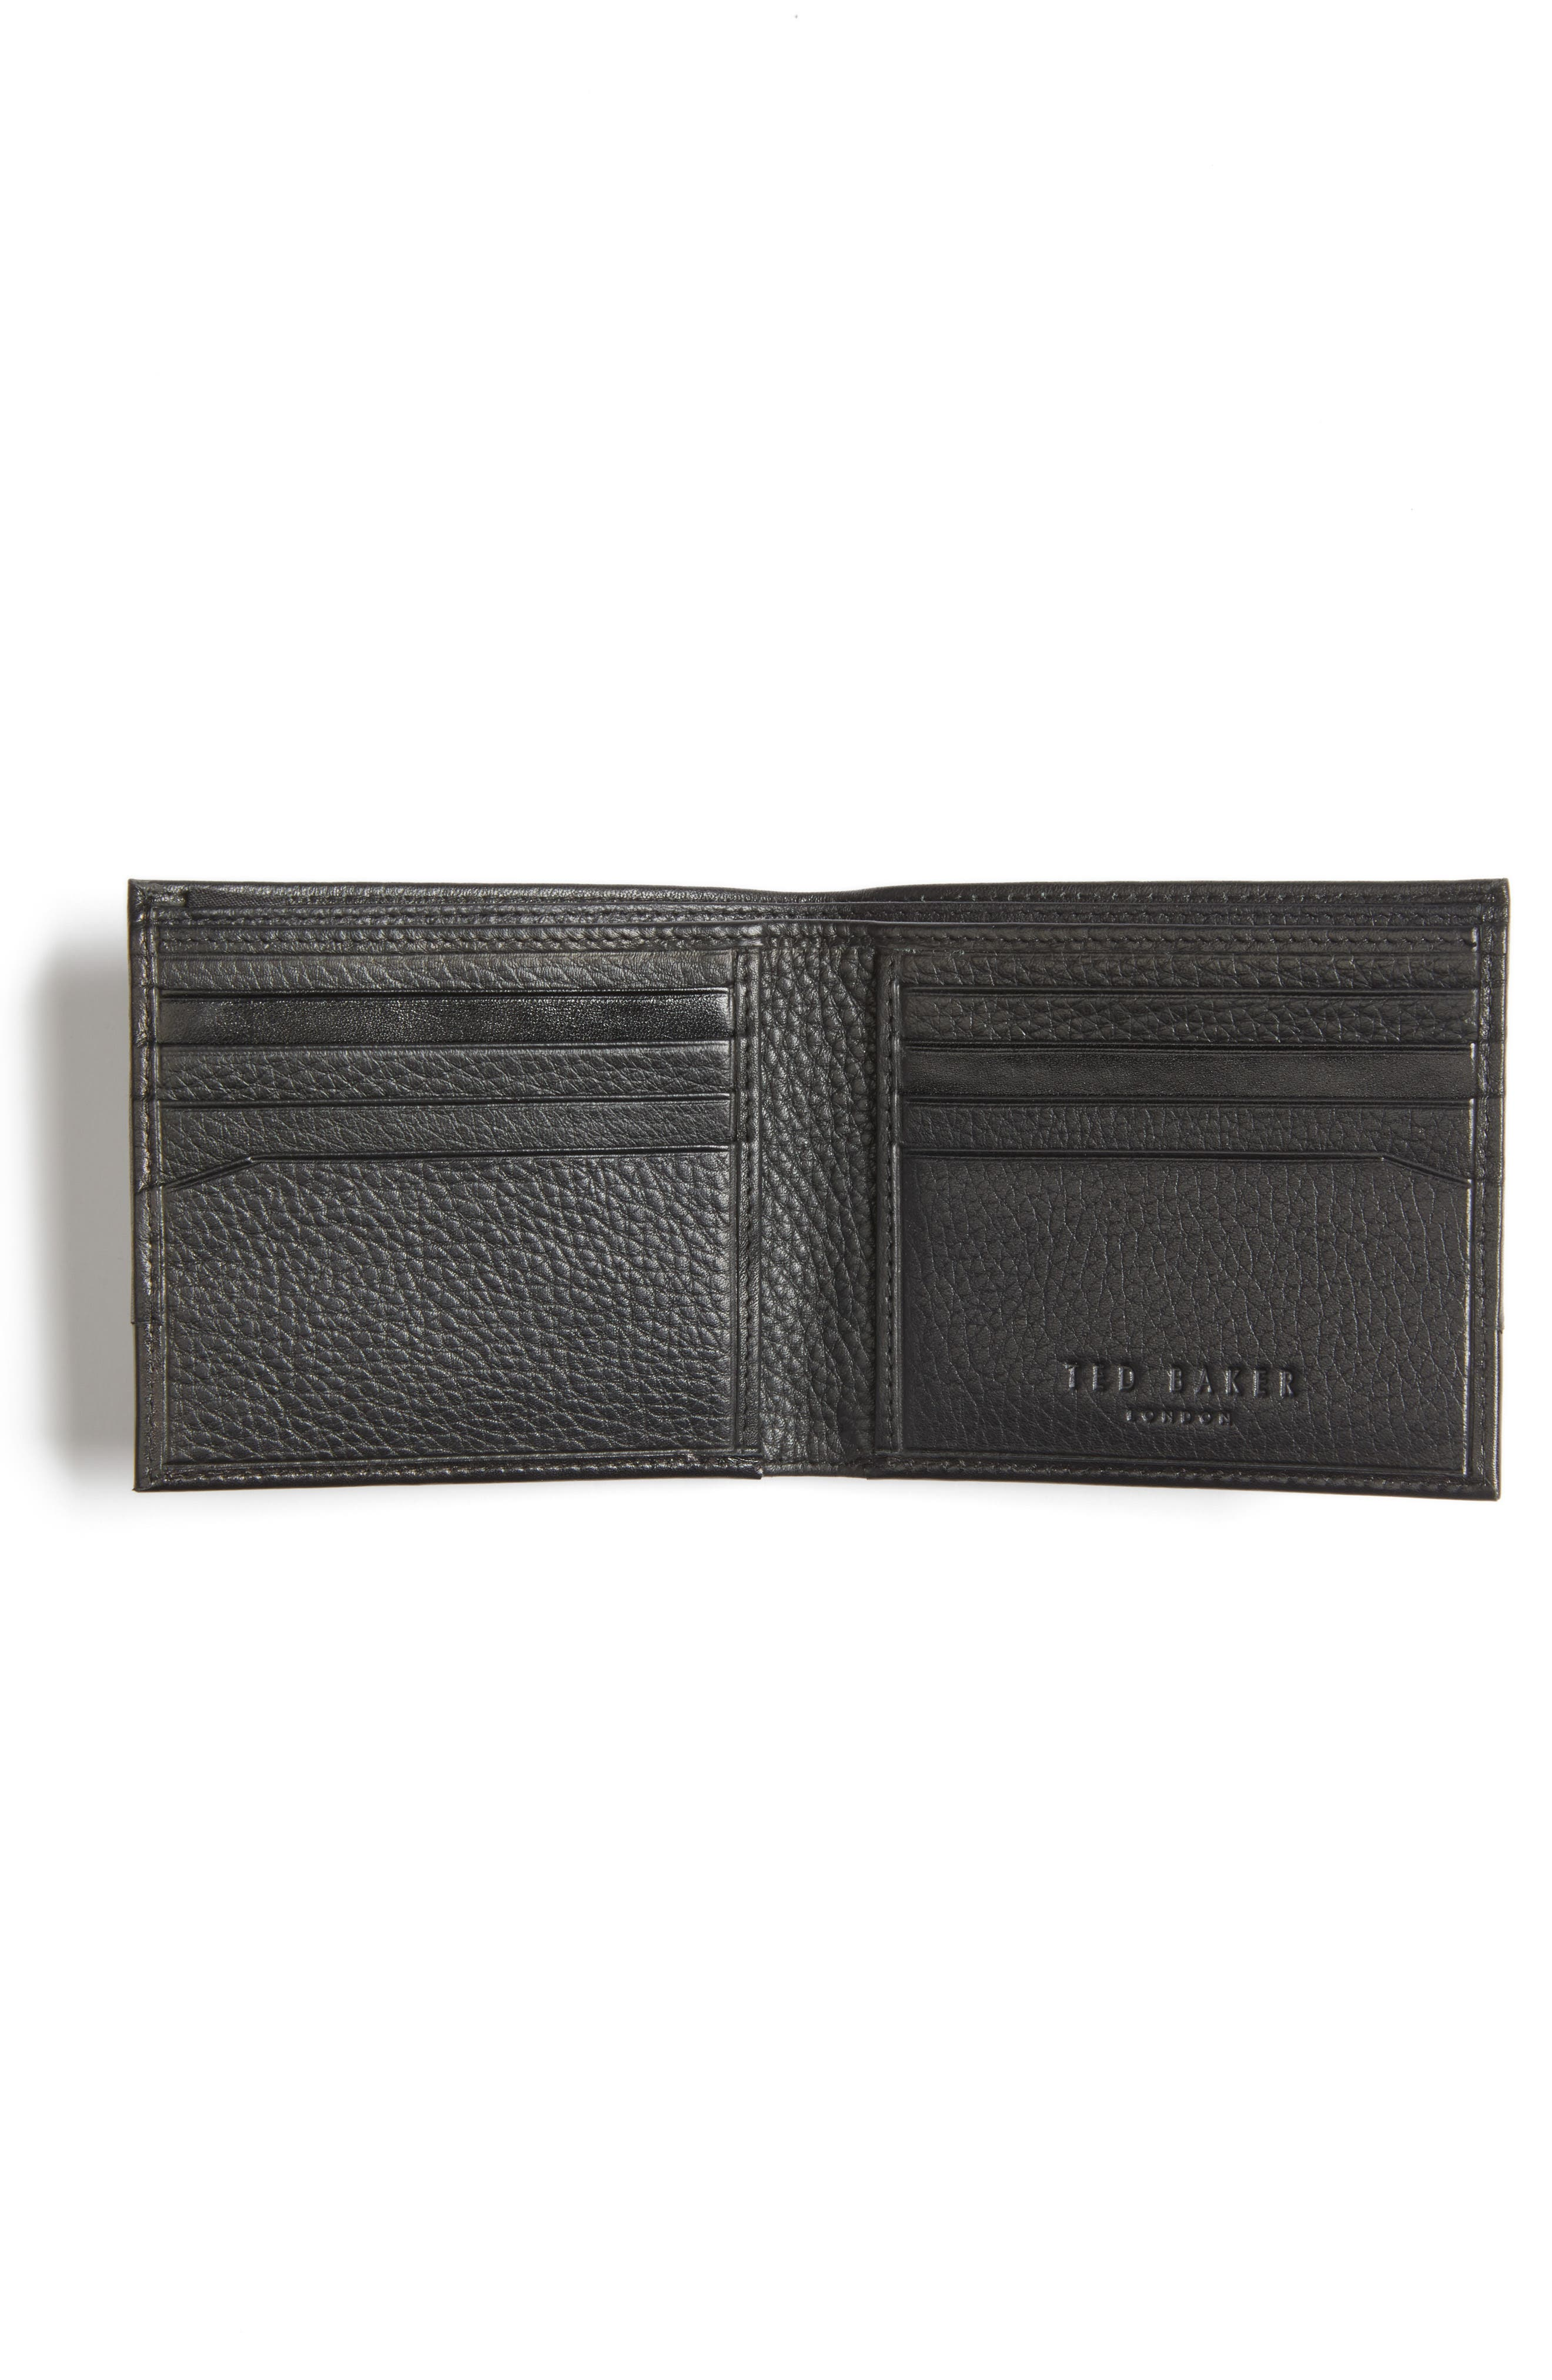 Mixdup Leather Wallet,                             Alternate thumbnail 2, color,                             001